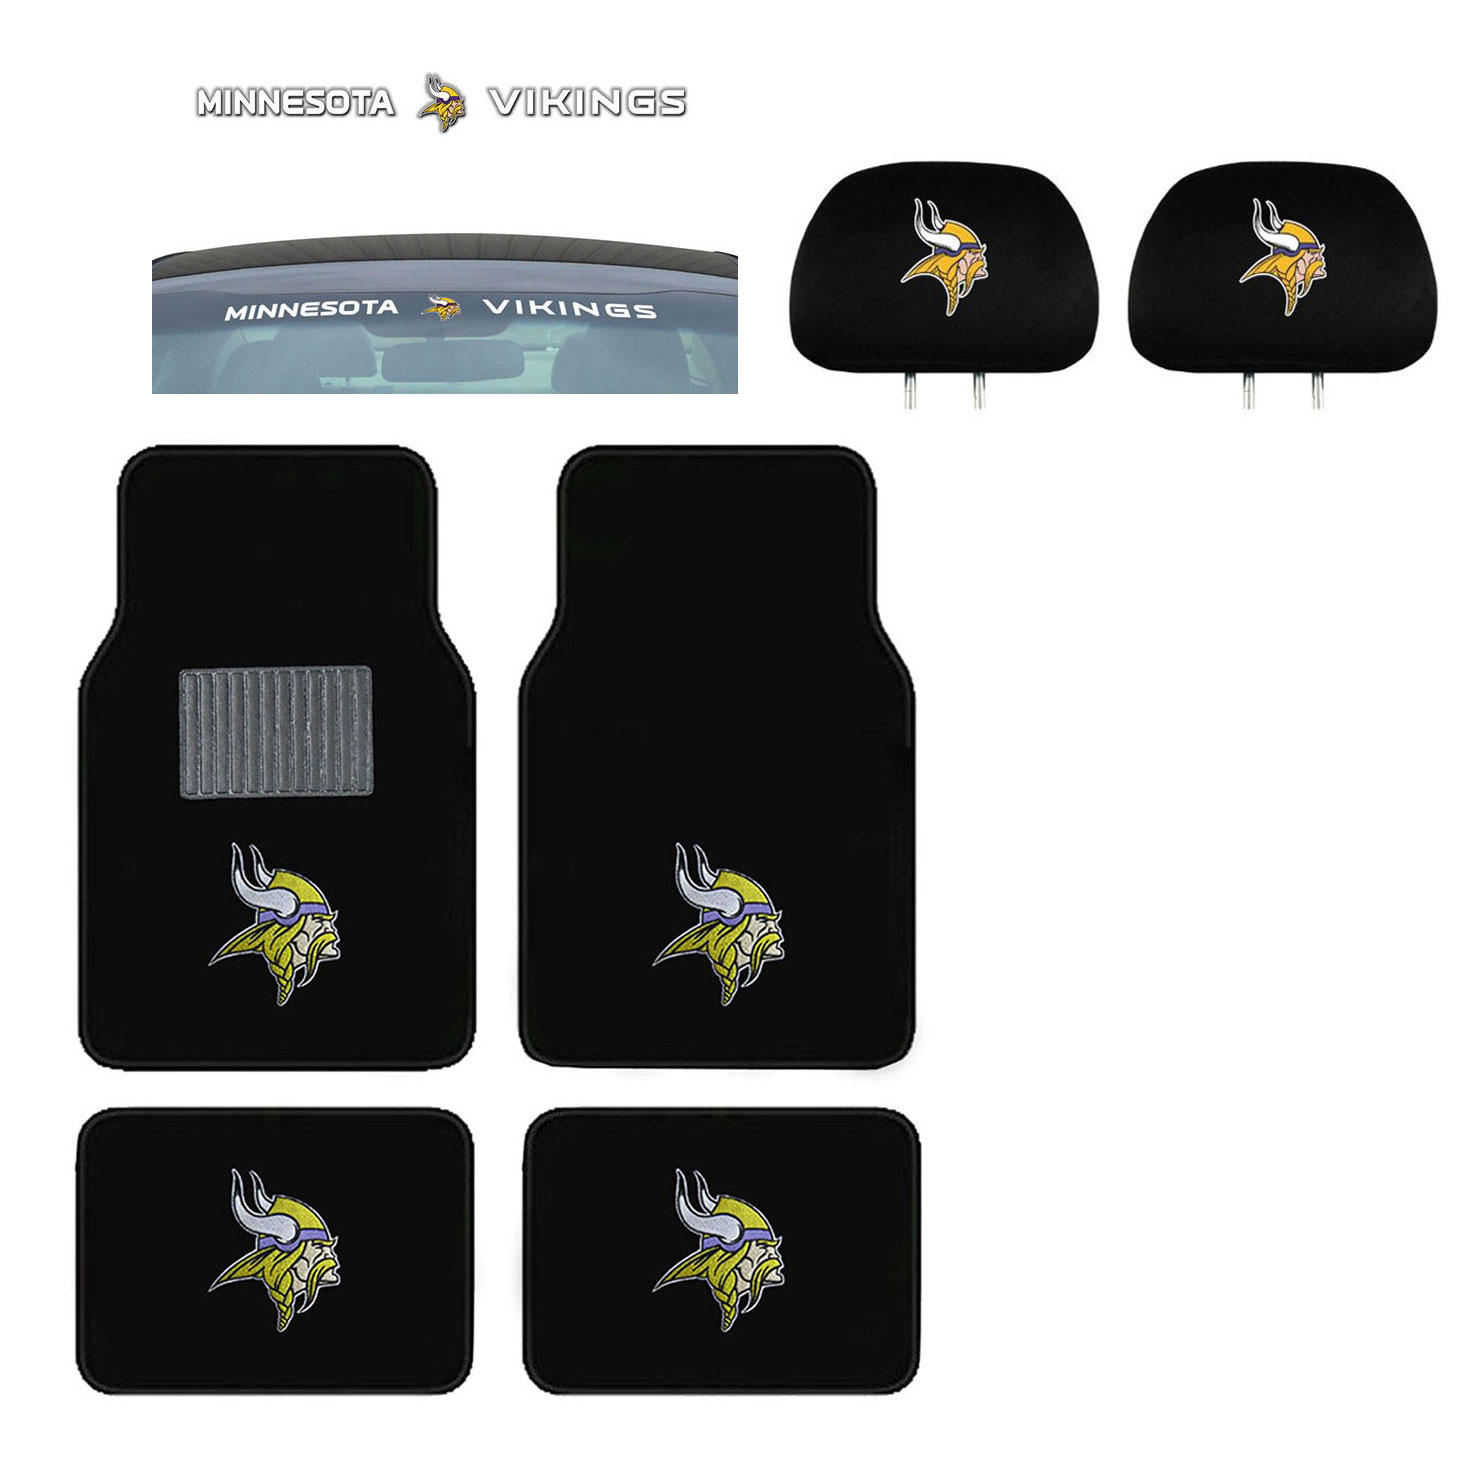 Minnesota Vikings 4 Pc Carpet Floor Mats And Head Rest Cover With Windshield Decal